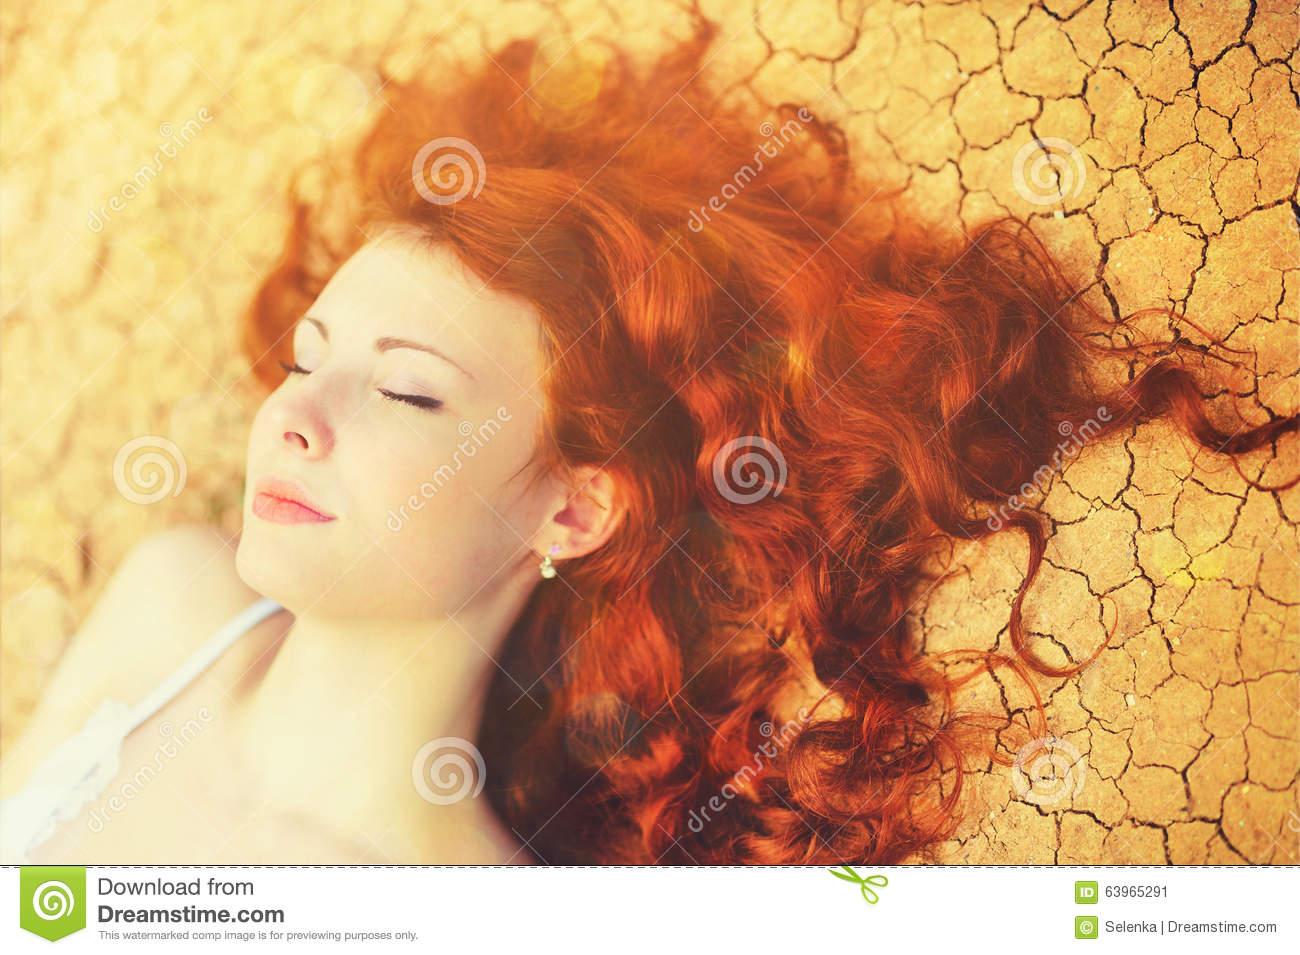 Sunny portrait of a relaxing young woman with chic long curly red hair lying on the cracked ground.